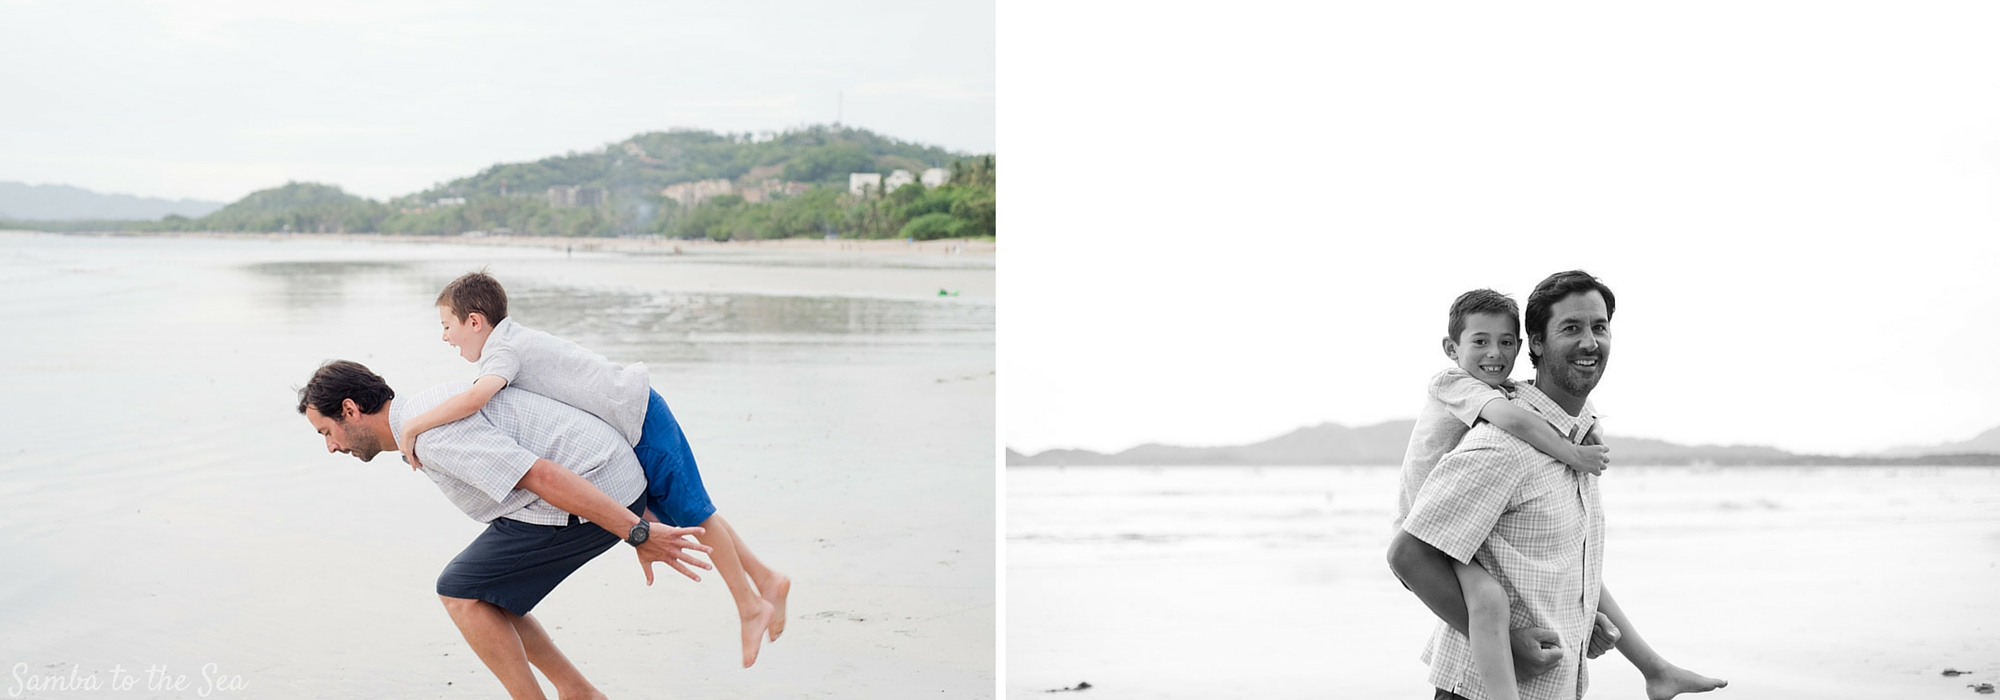 Father and son on the beach in Tamarindo, Costa Rica. Photographed by Kristen M. Brown, Samba to the Sea Photography.